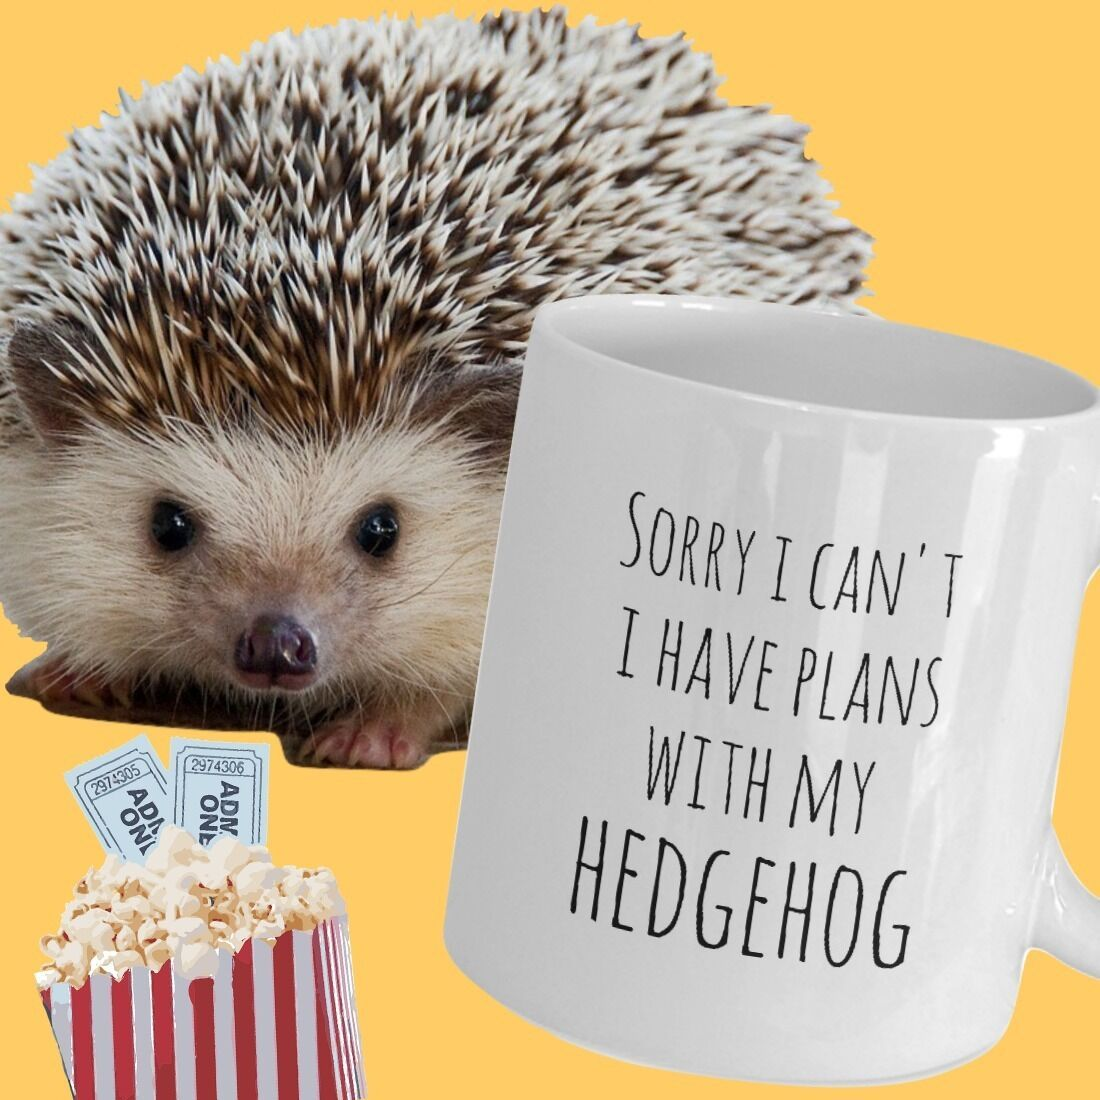 Hedgehog Mug Sorry I Can't I Have Plans With My Hedgehog Owner Hedgehog Life Cup image 2